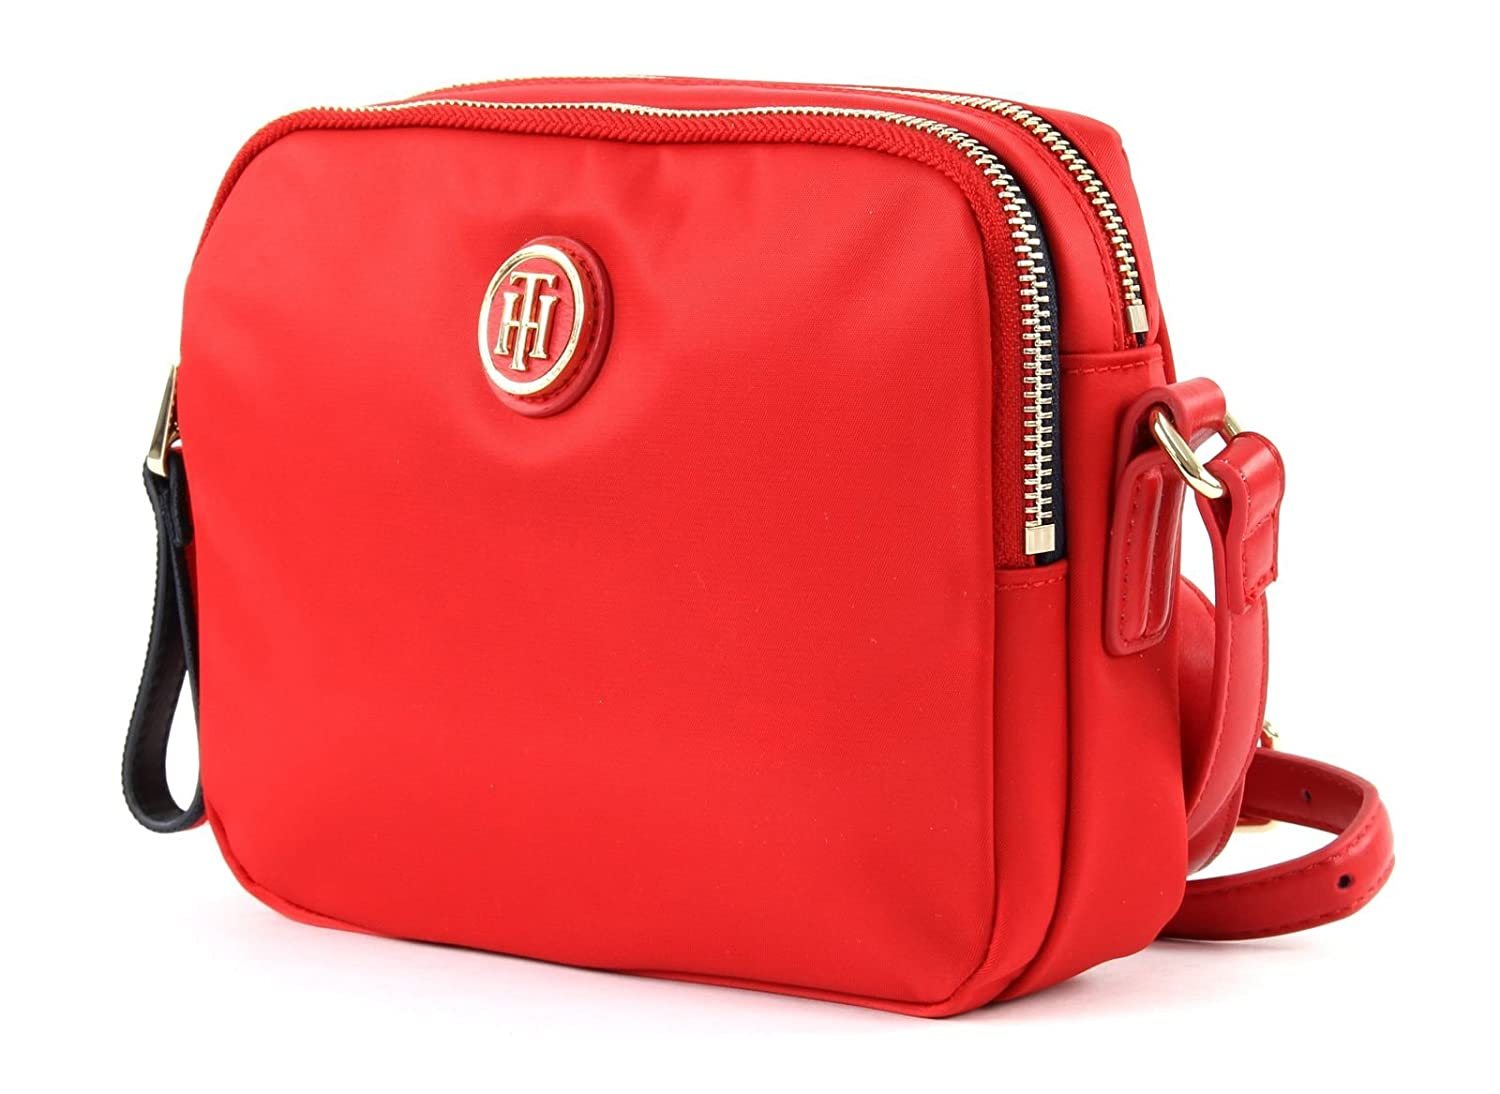 c41559a531ed TOMMY HILFIGER Poppy Crossover Tommy Red  Amazon.co.uk  Shoes   Bags